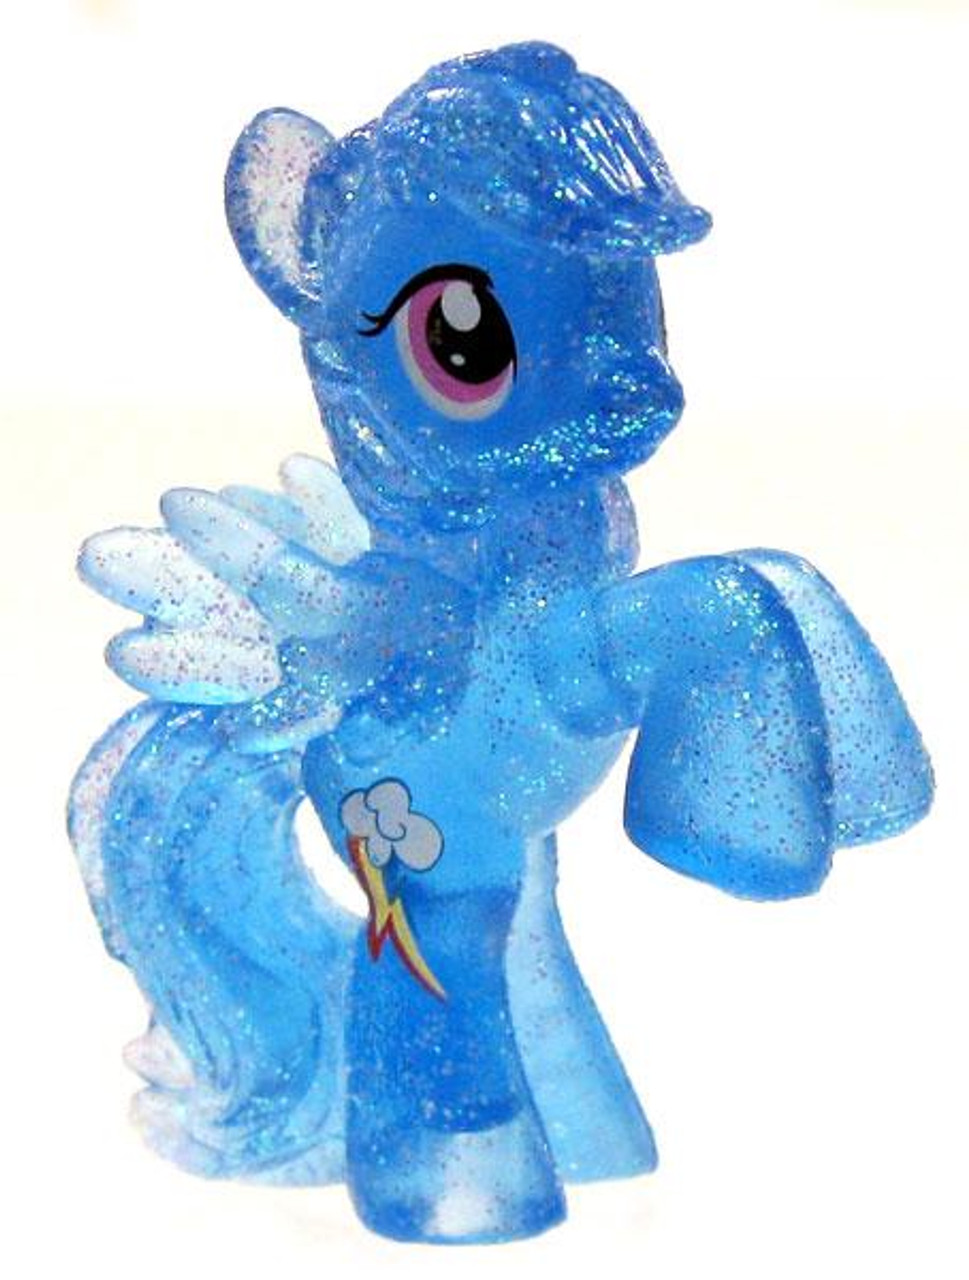 My Little Pony Friendship is Magic 2 Inch Rainbow Dash Exclusive PVC Figure [Crystal Glitter]